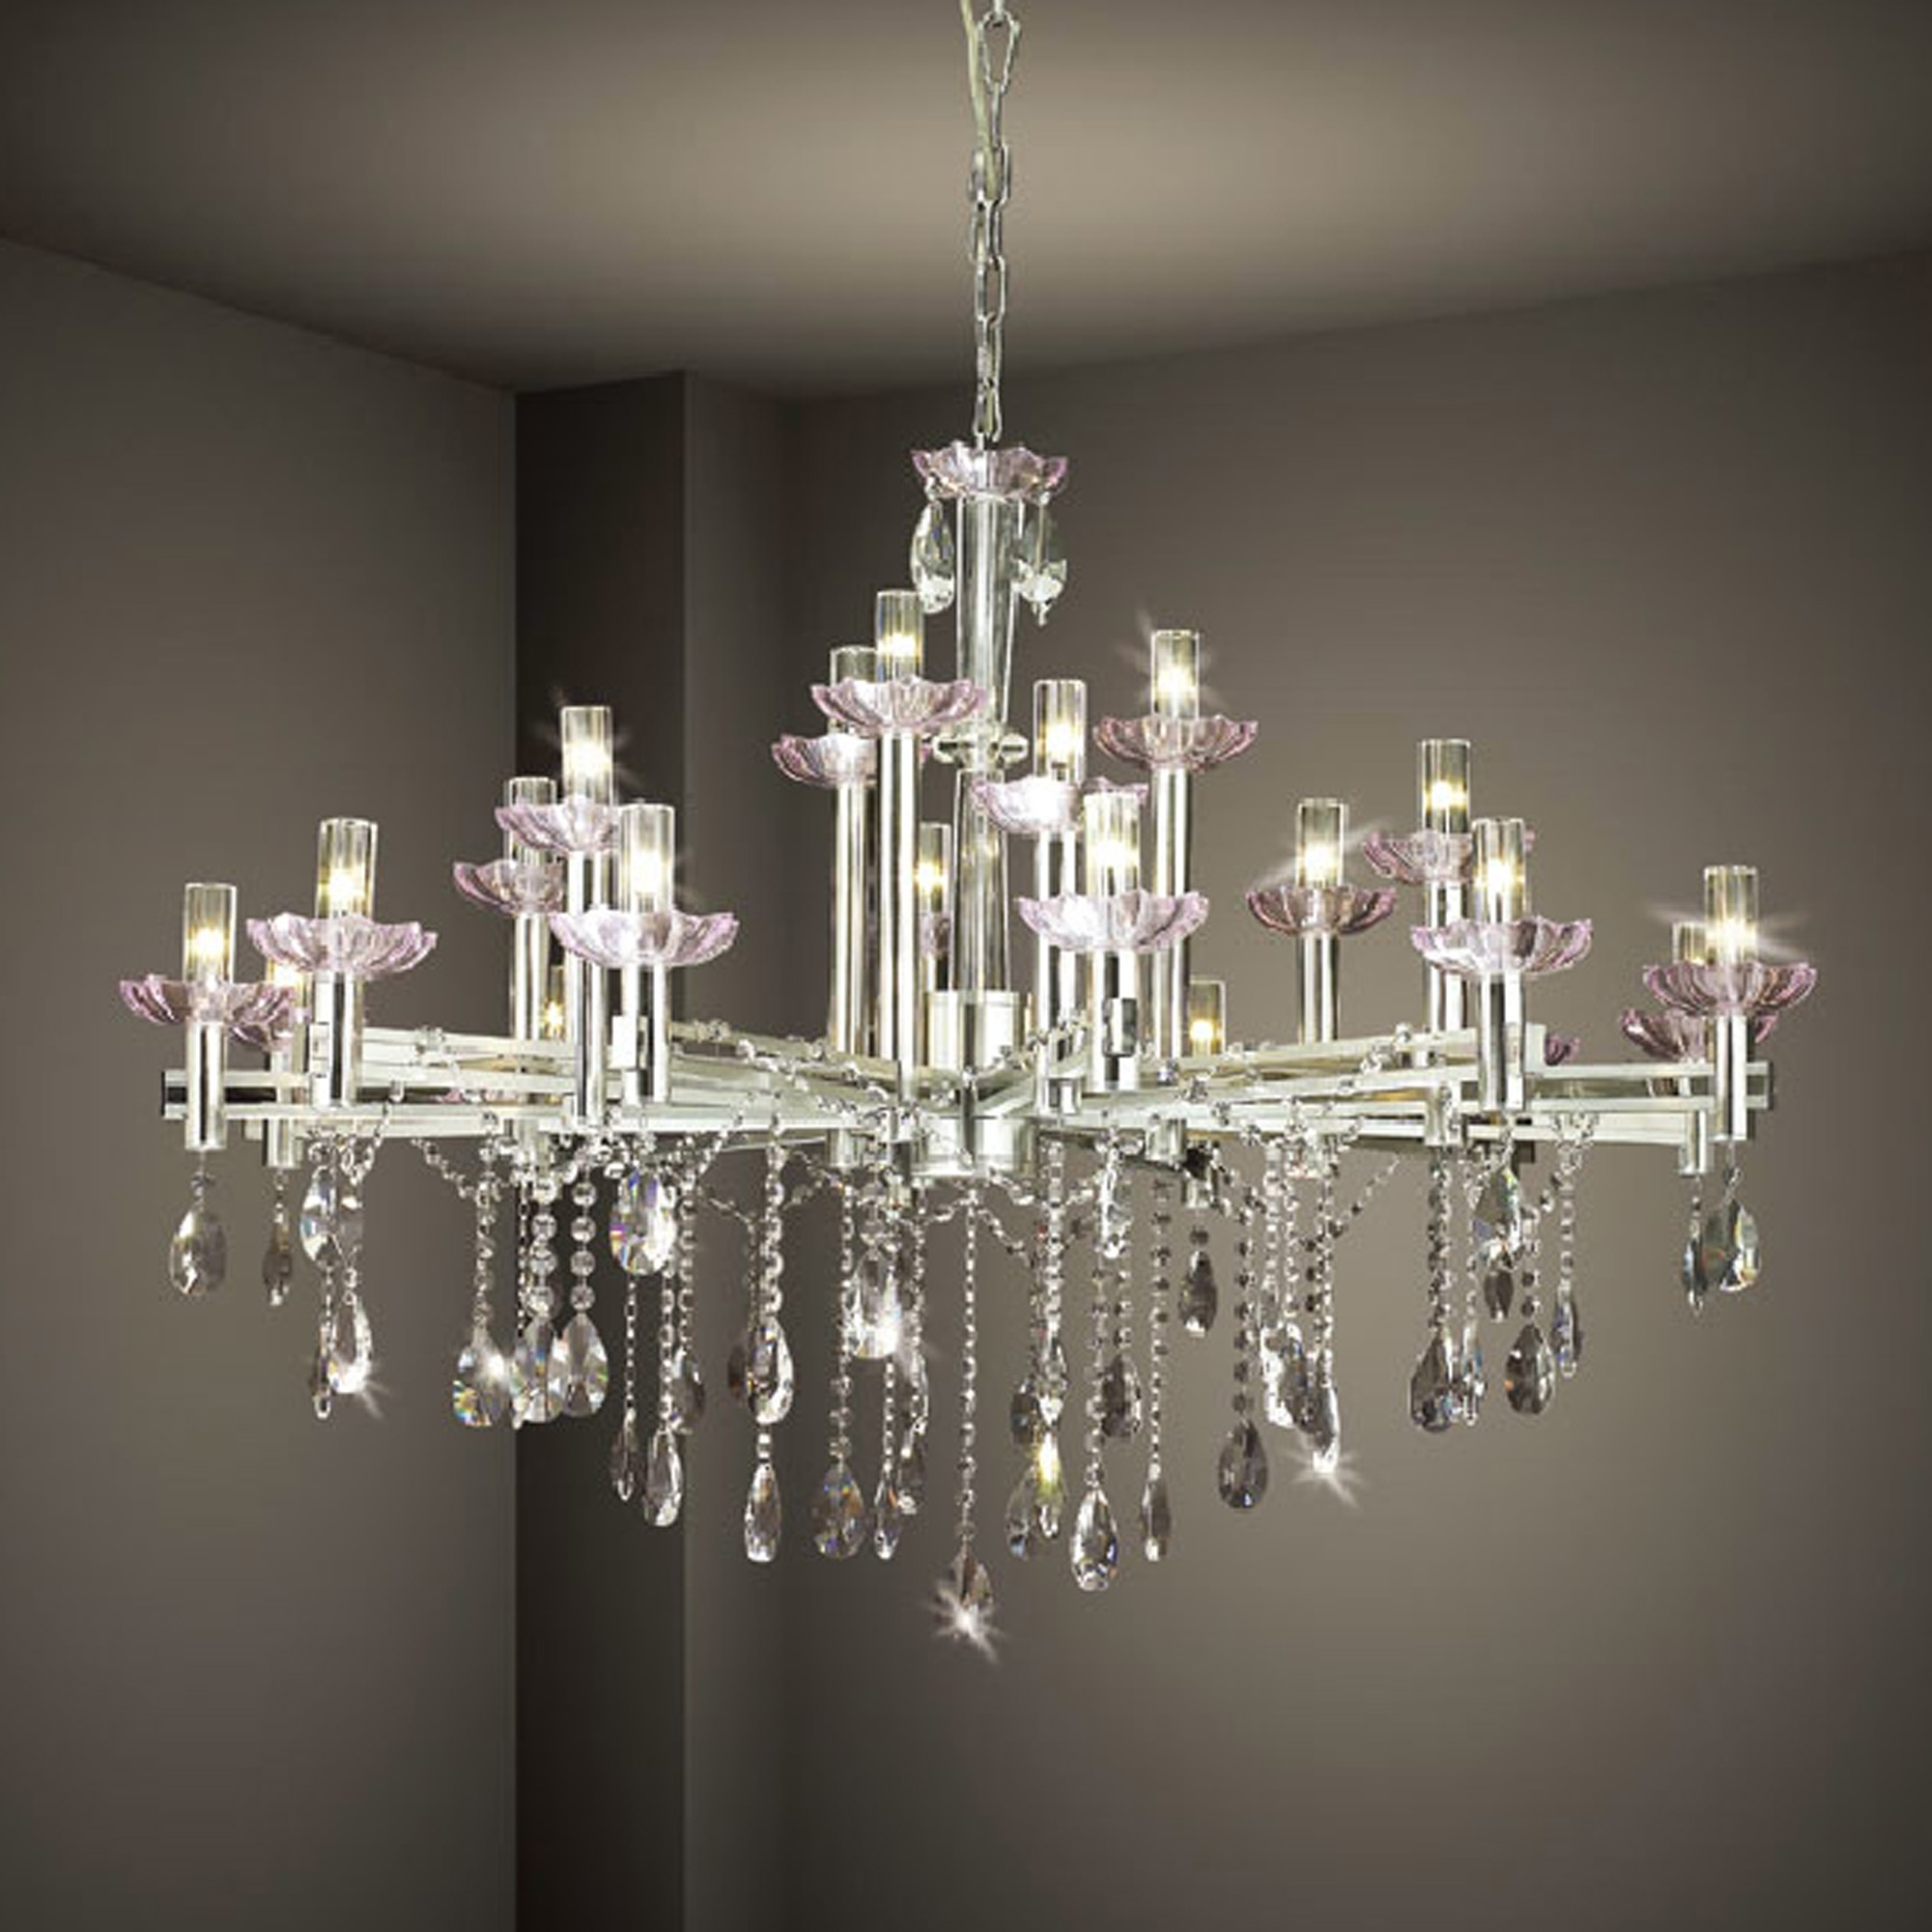 Popular Hanging Modern Crystal Chandelier Lighting With Stainless Steel Throughout Black Contemporary Chandelier (View 20 of 20)